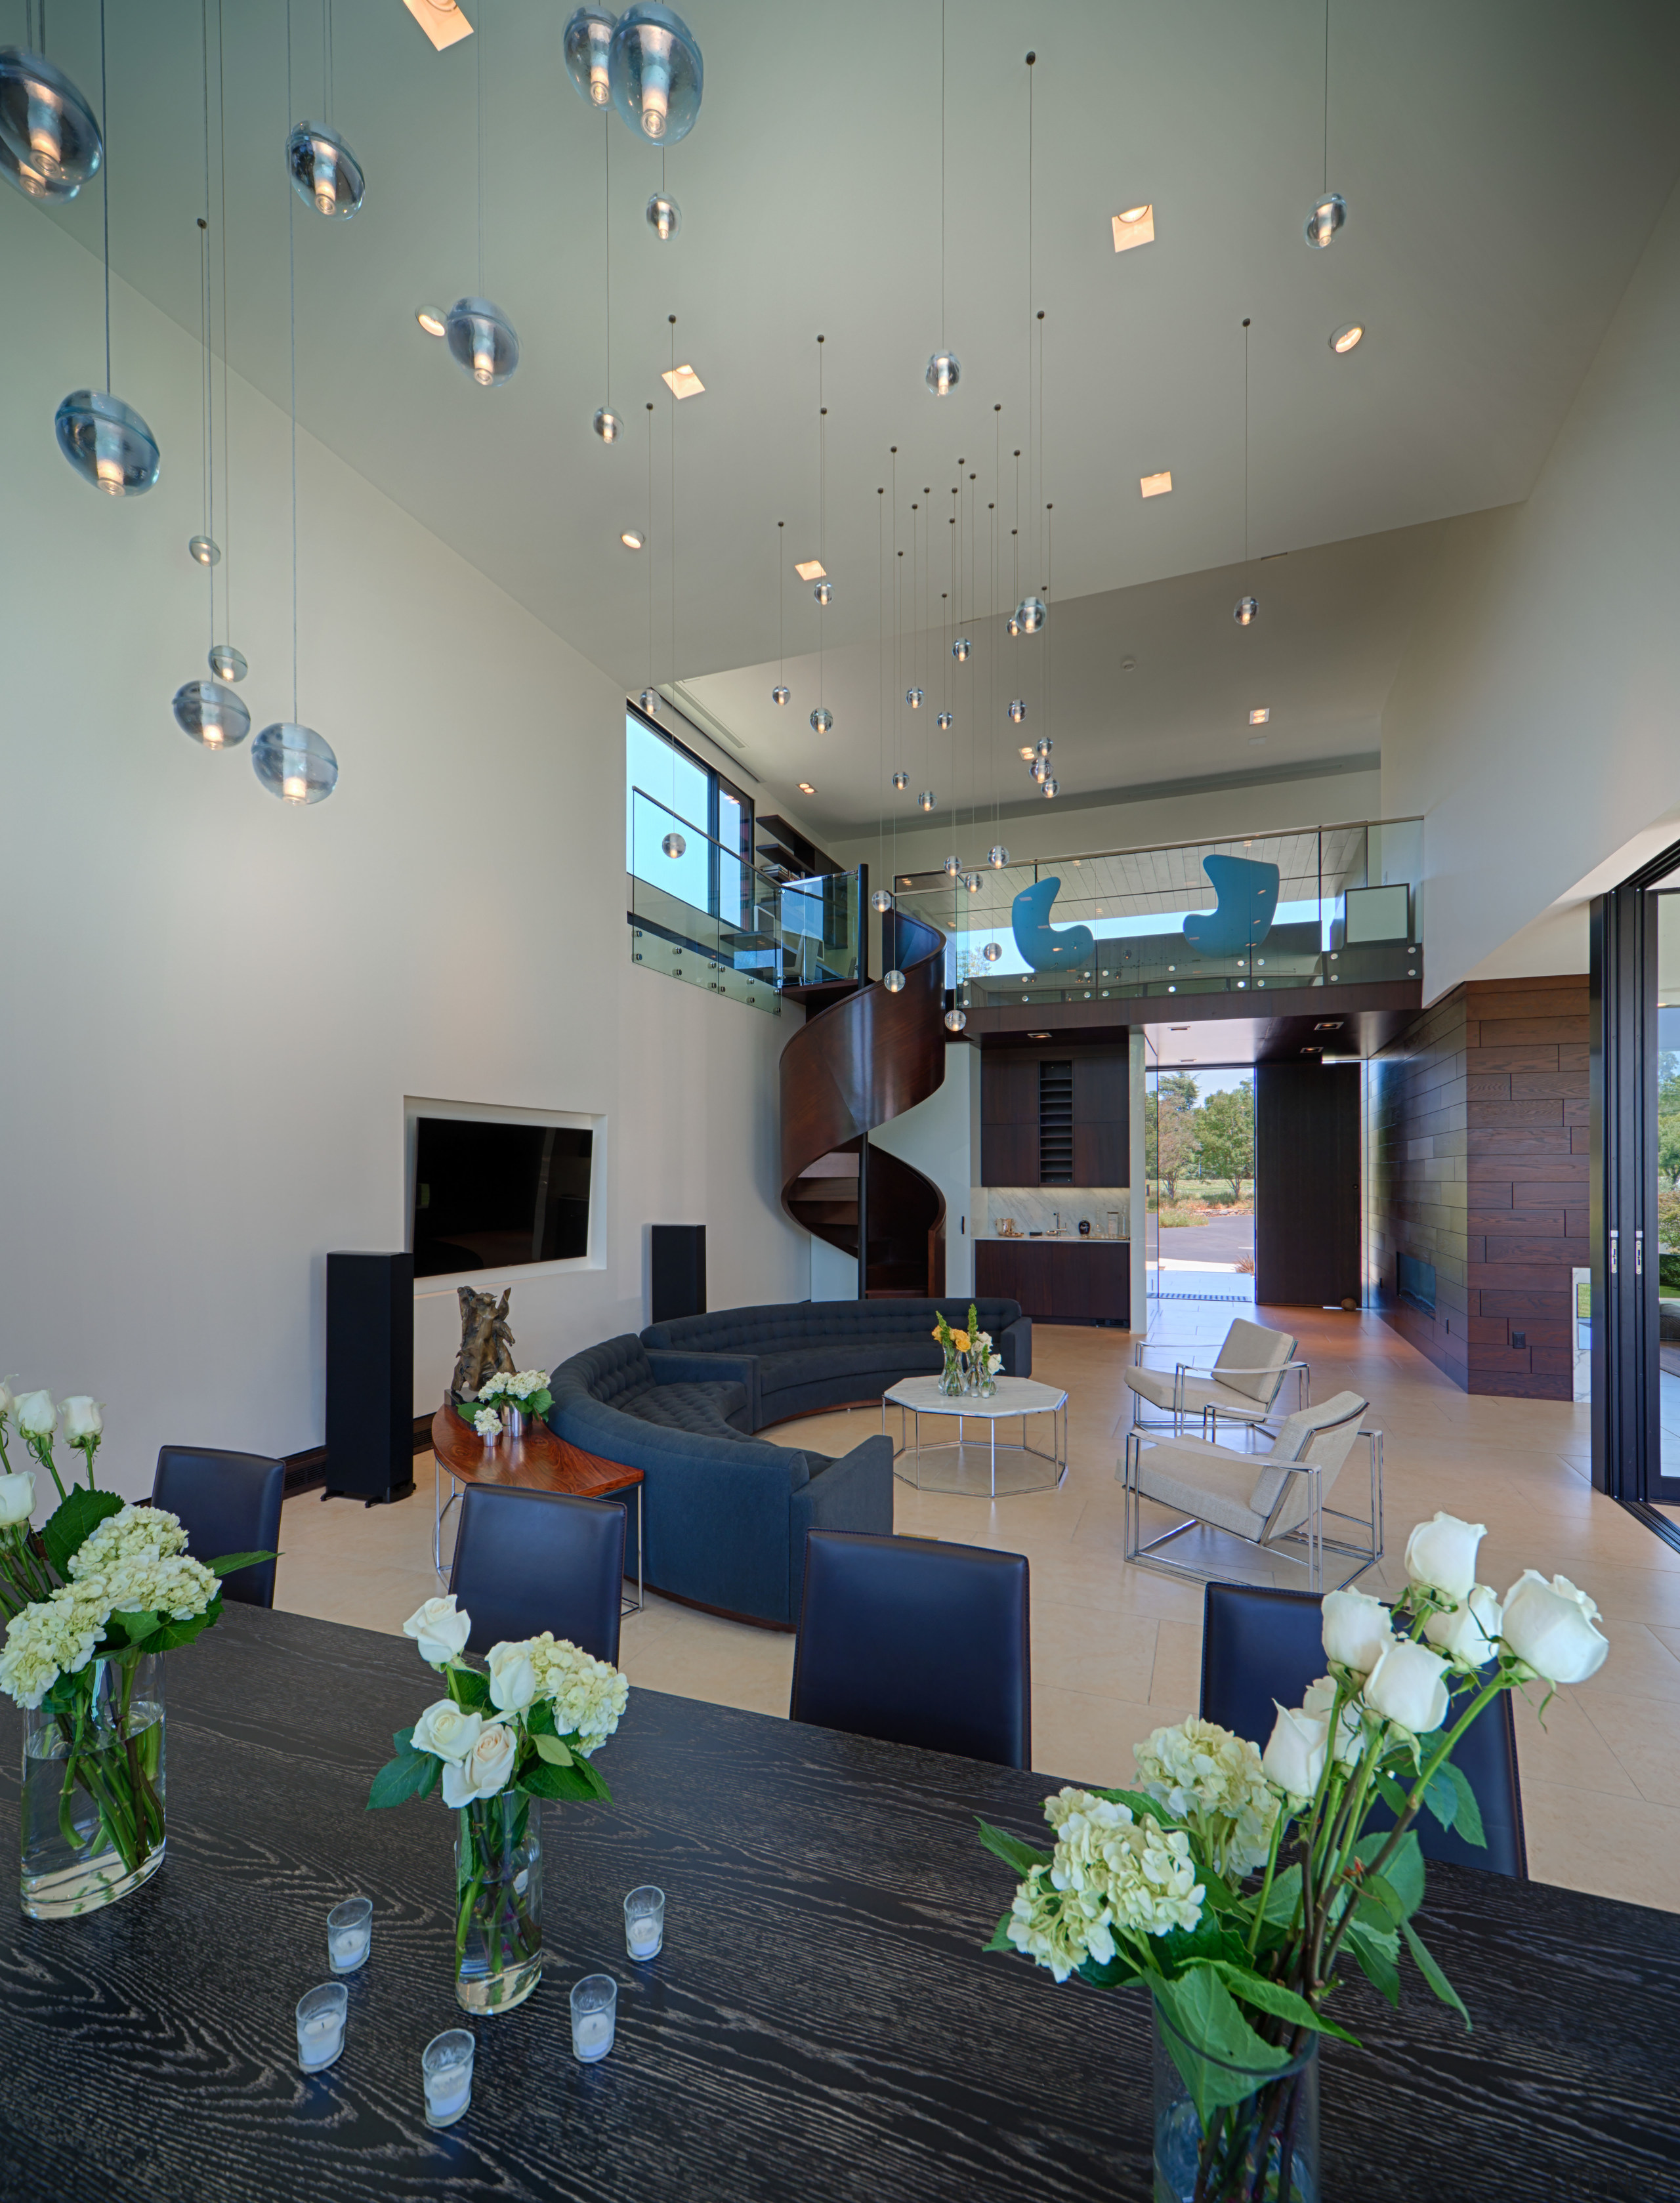 A spiral staircase near the entry leads up ceiling, interior design, living room, lobby, gray